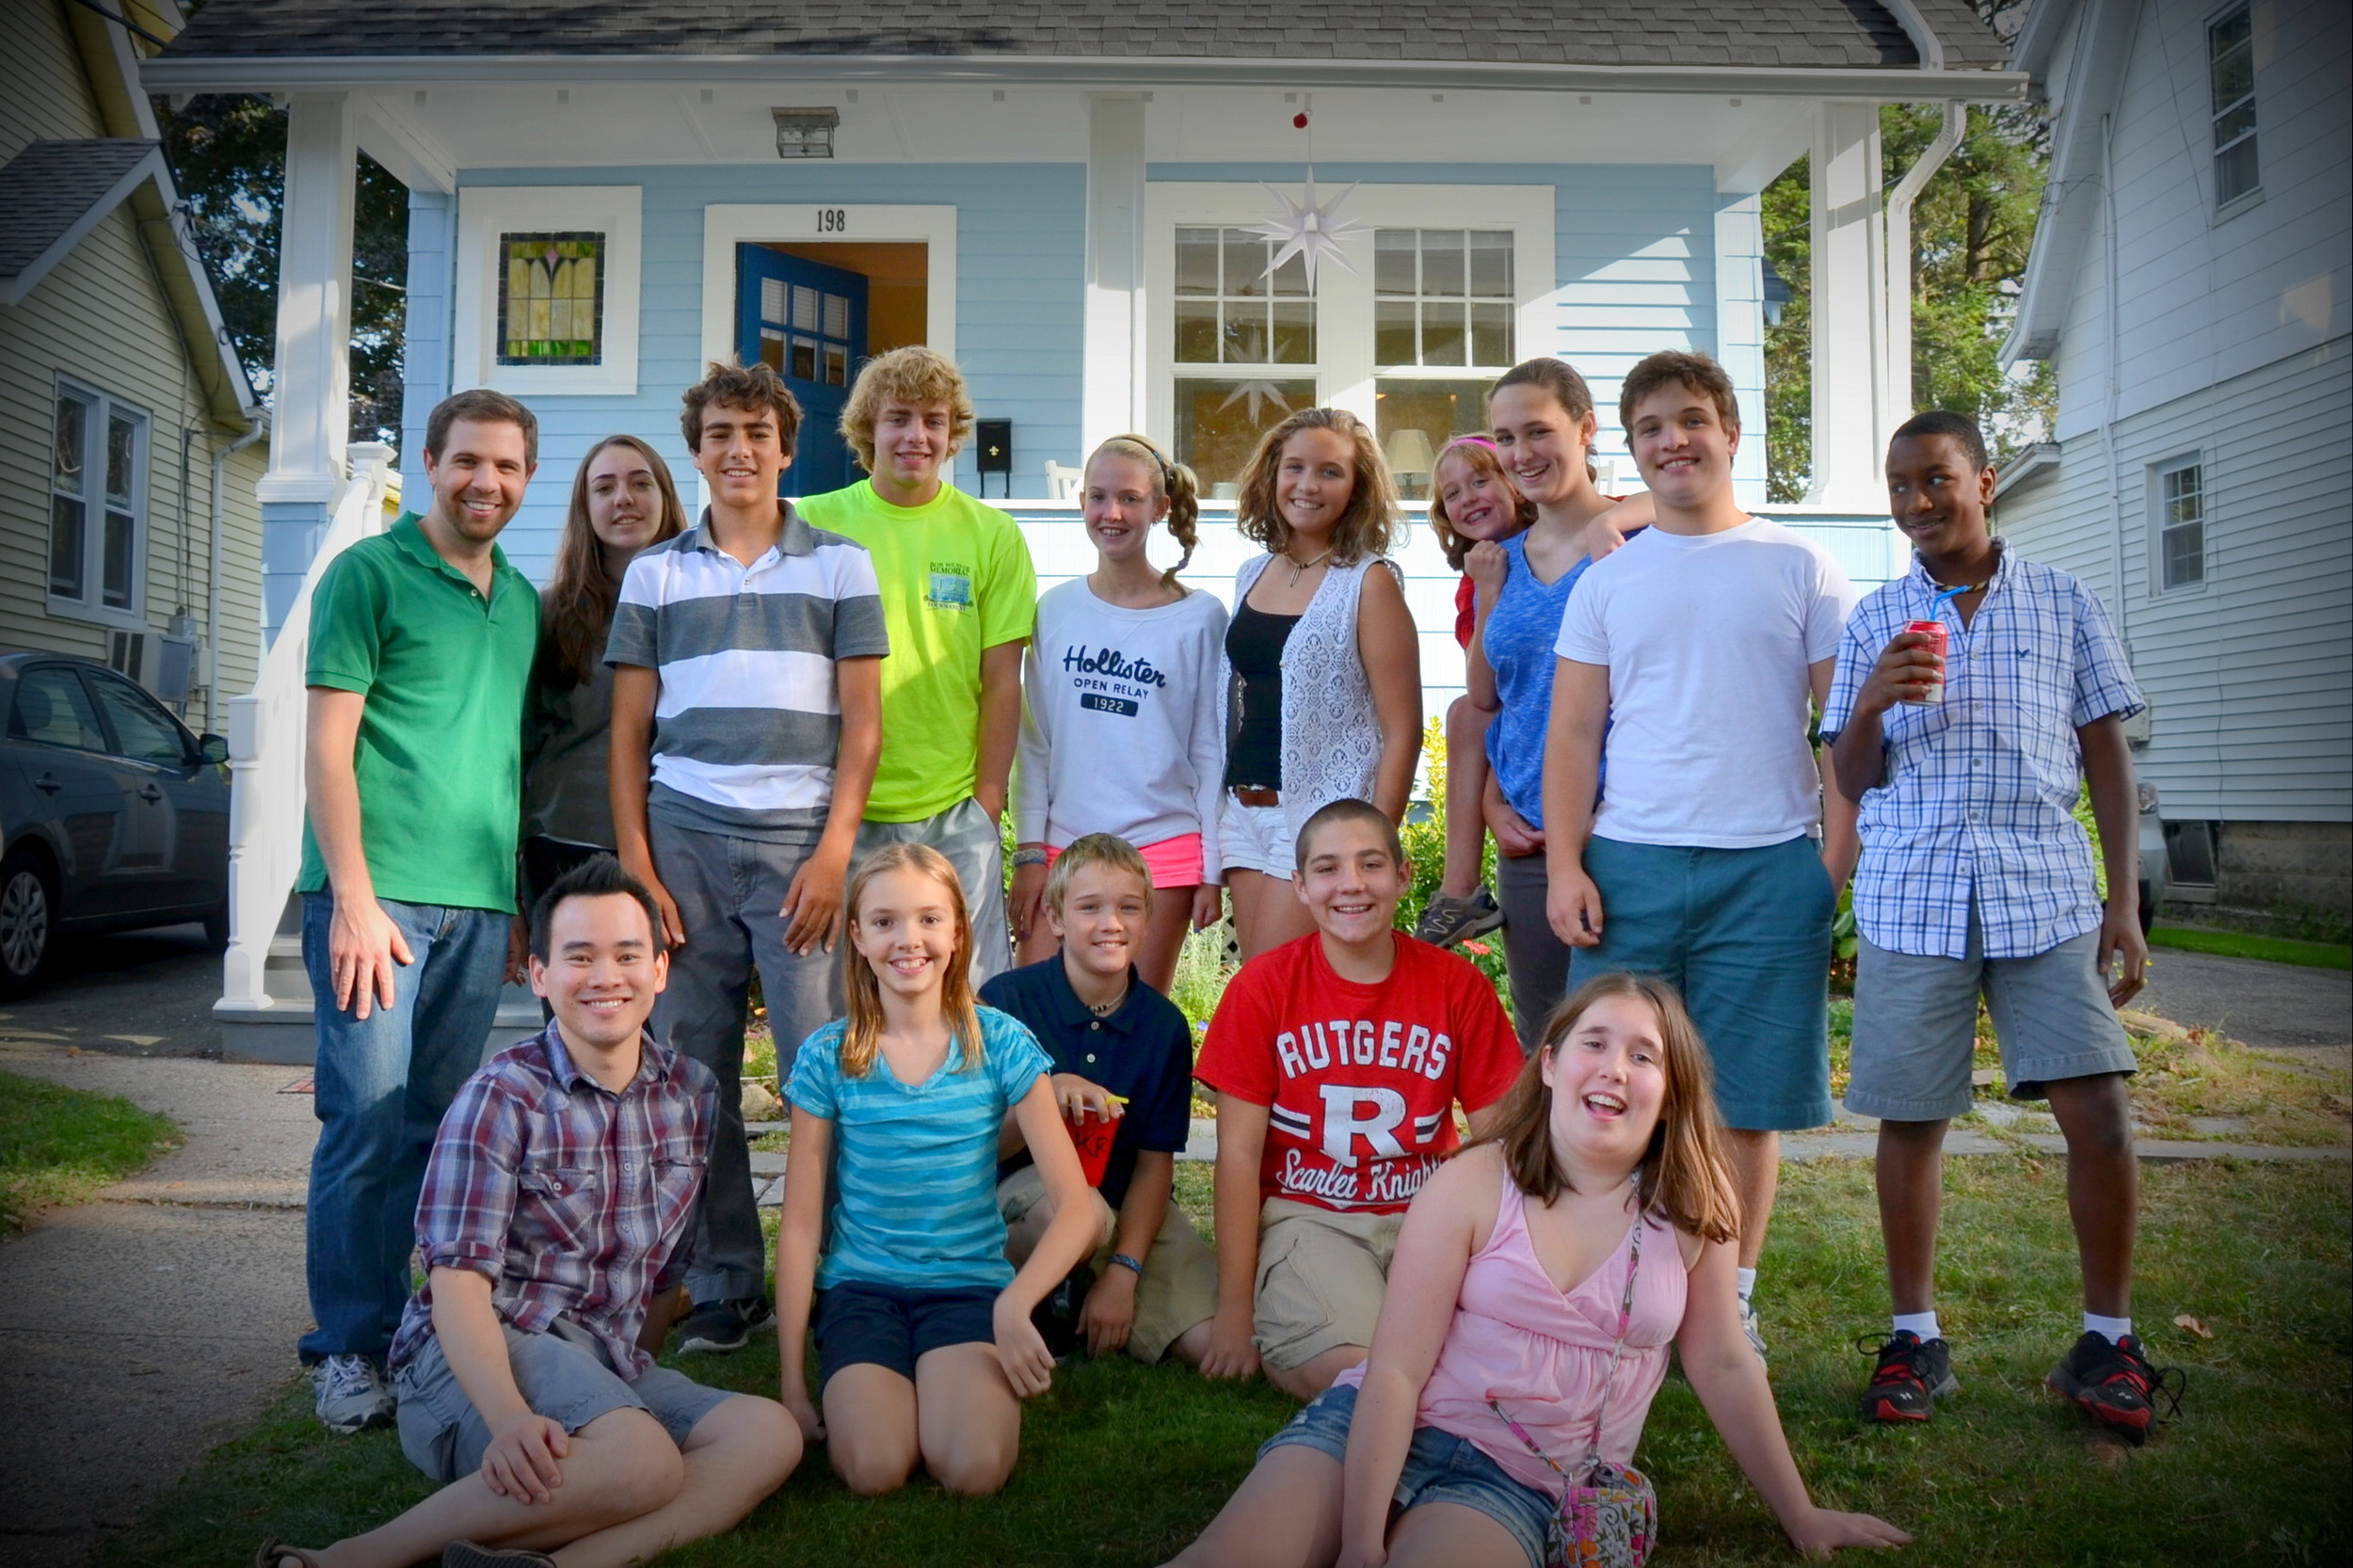 Youth Group Party at our house 2012